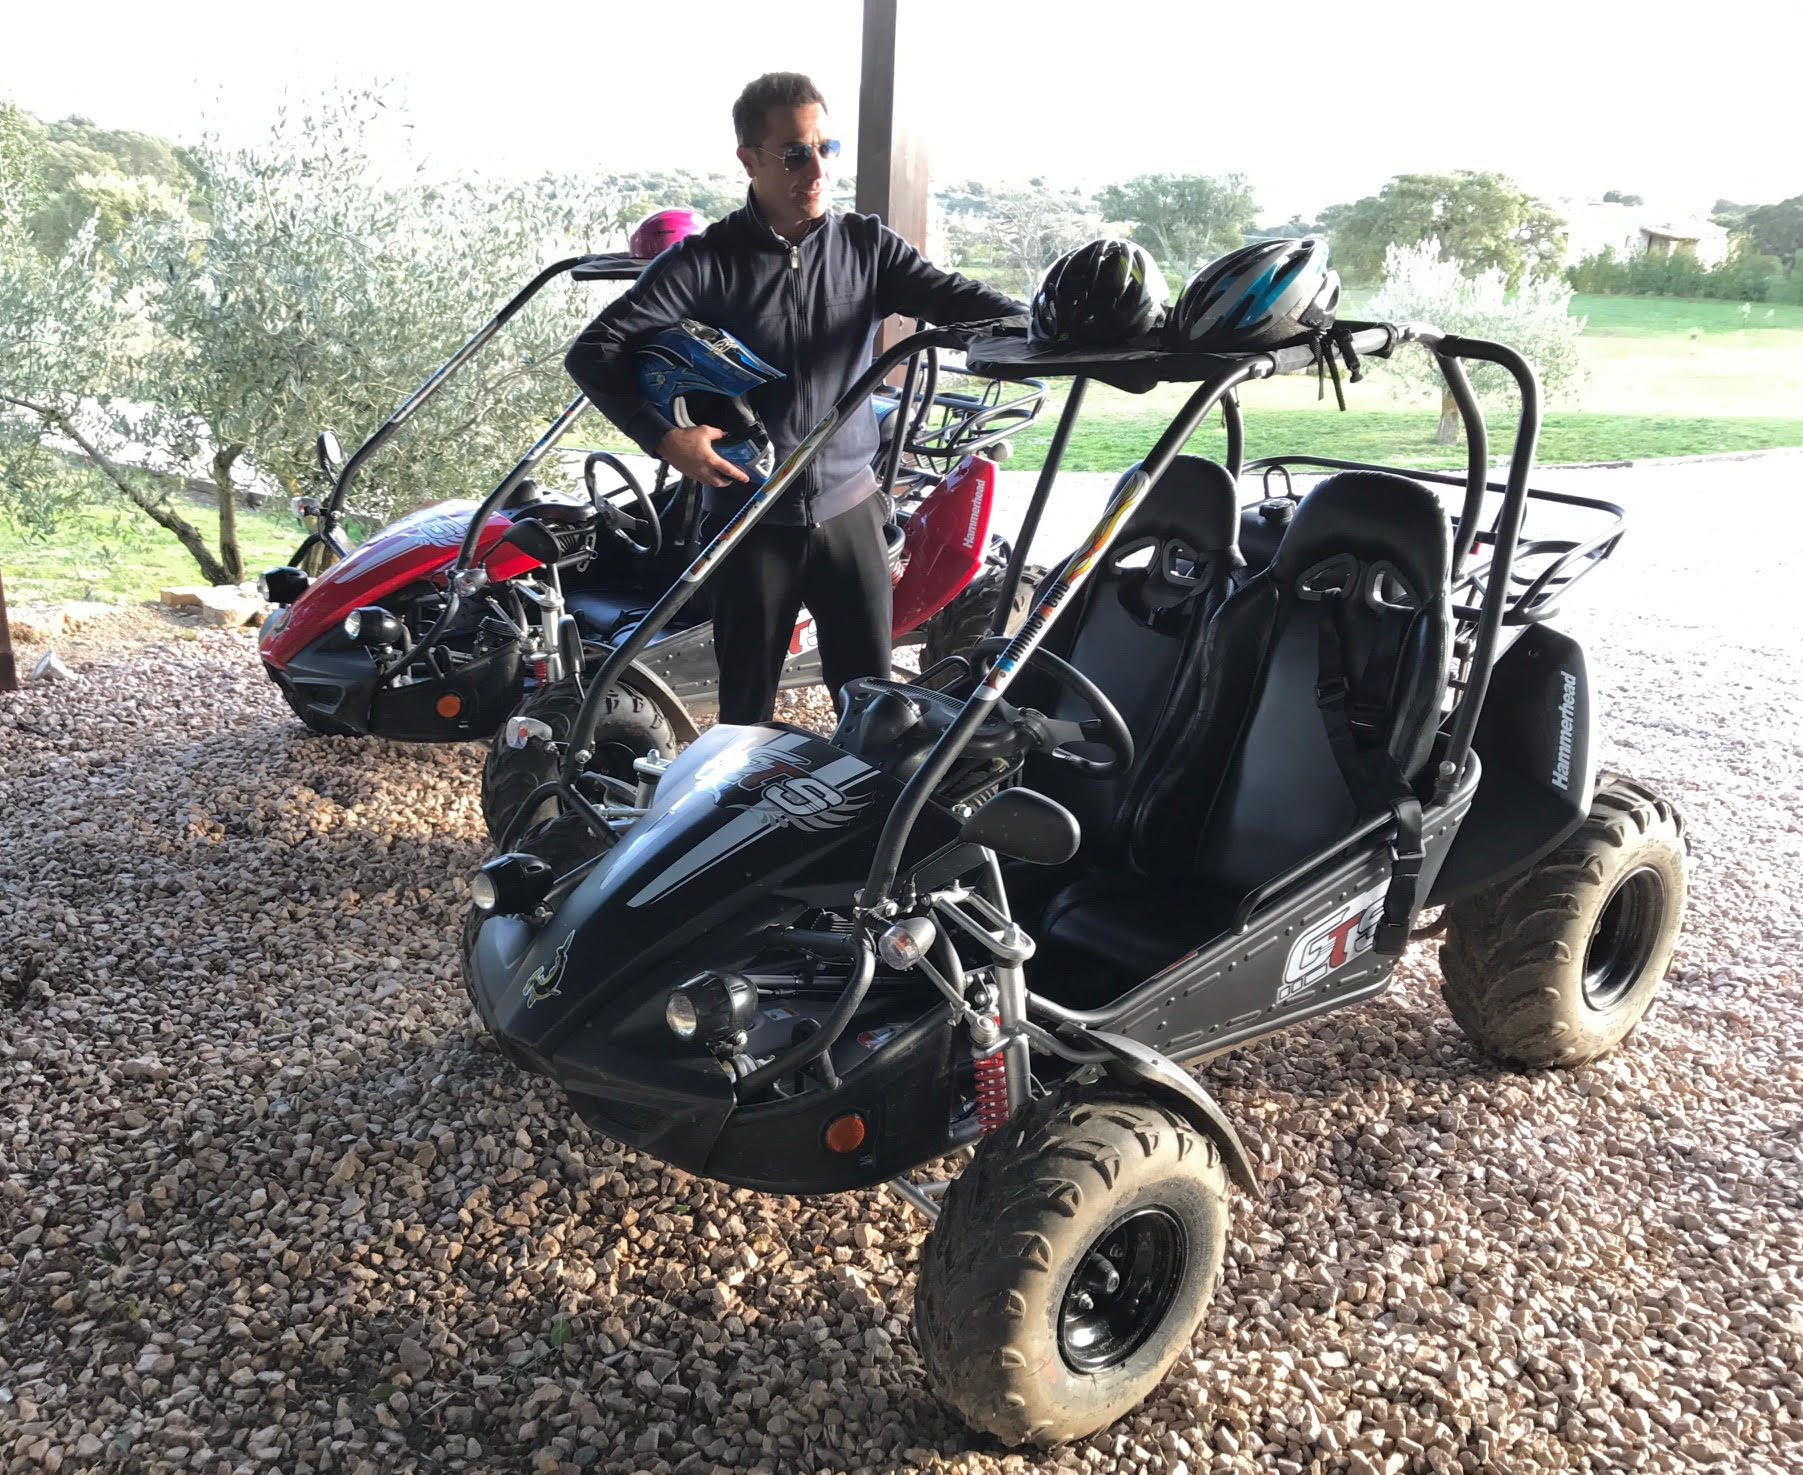 Gino D'Acampo in Sardinia with a Stormbuggy